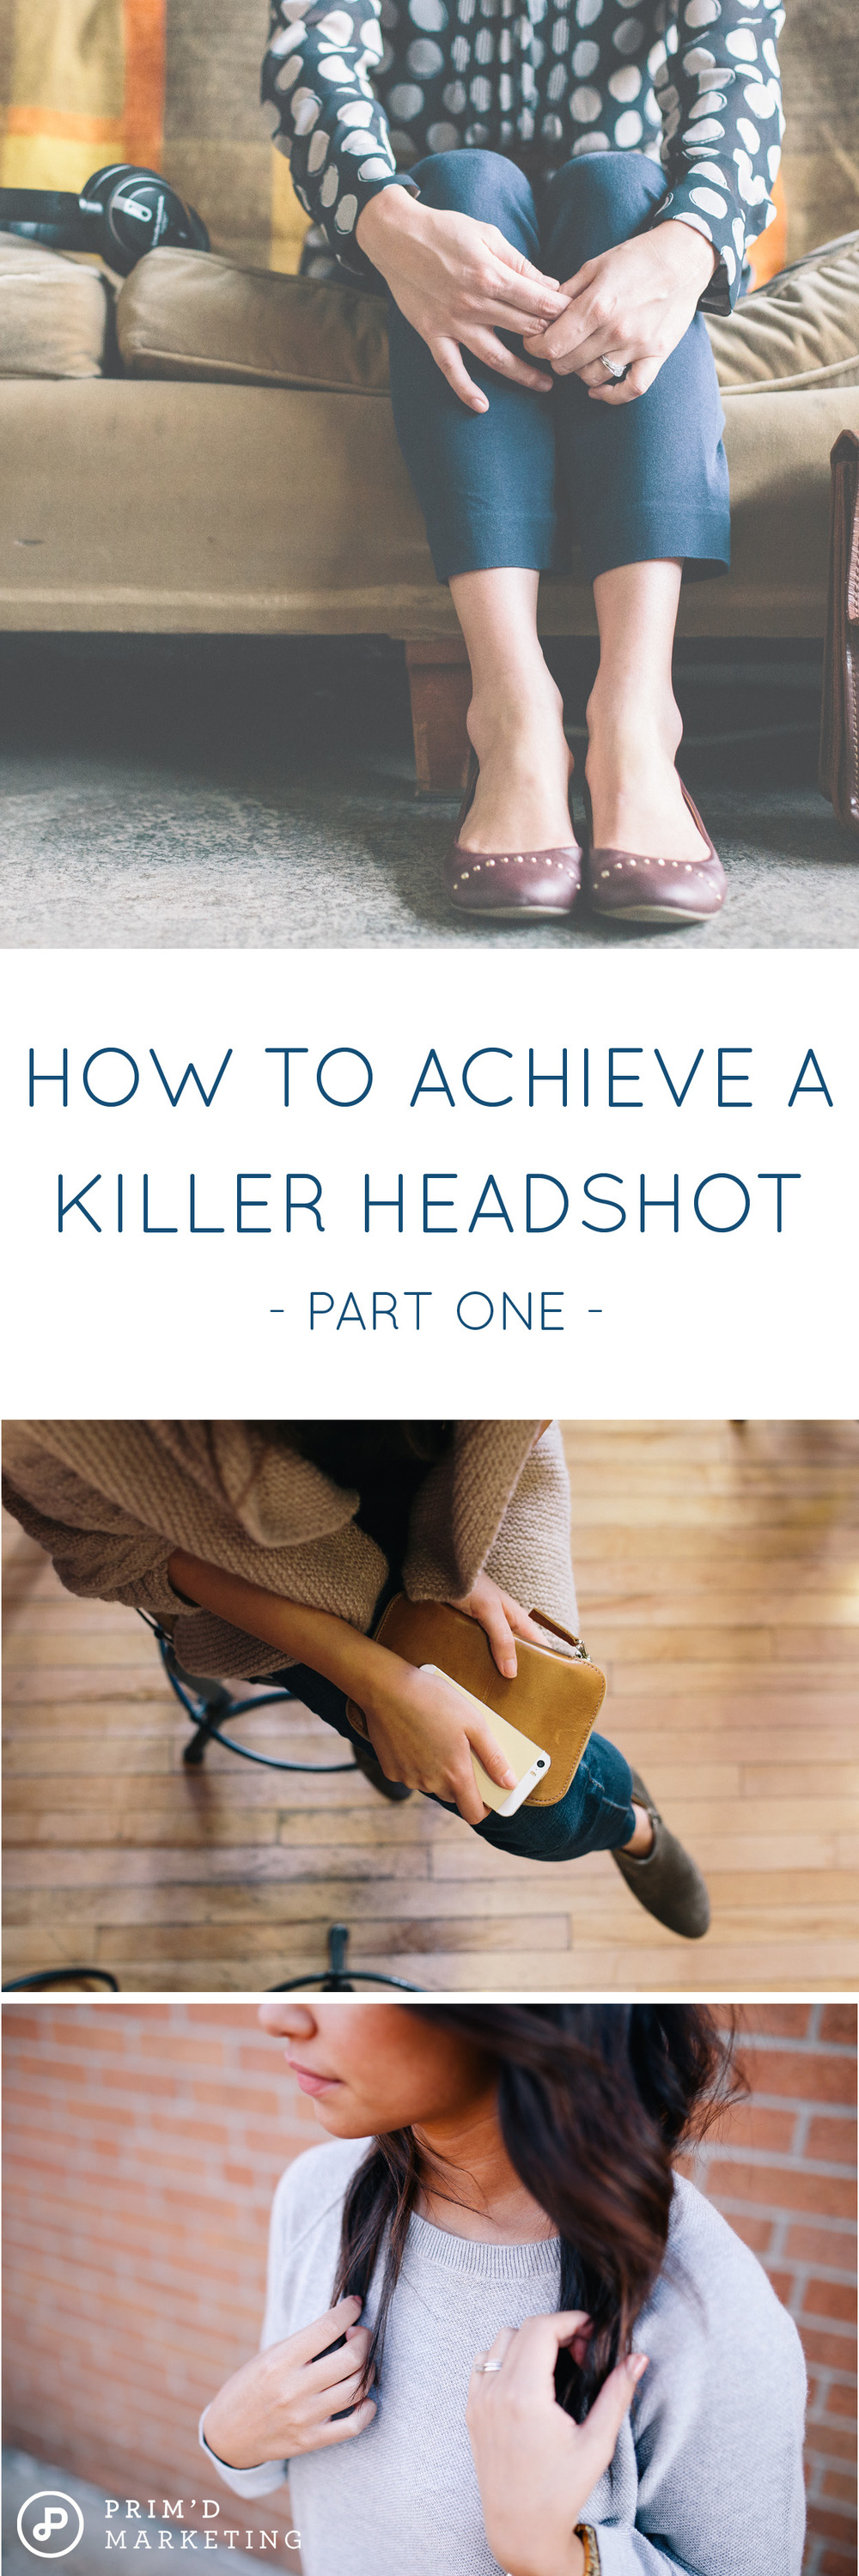 How To Achieve A Killer Headshot (part 1)